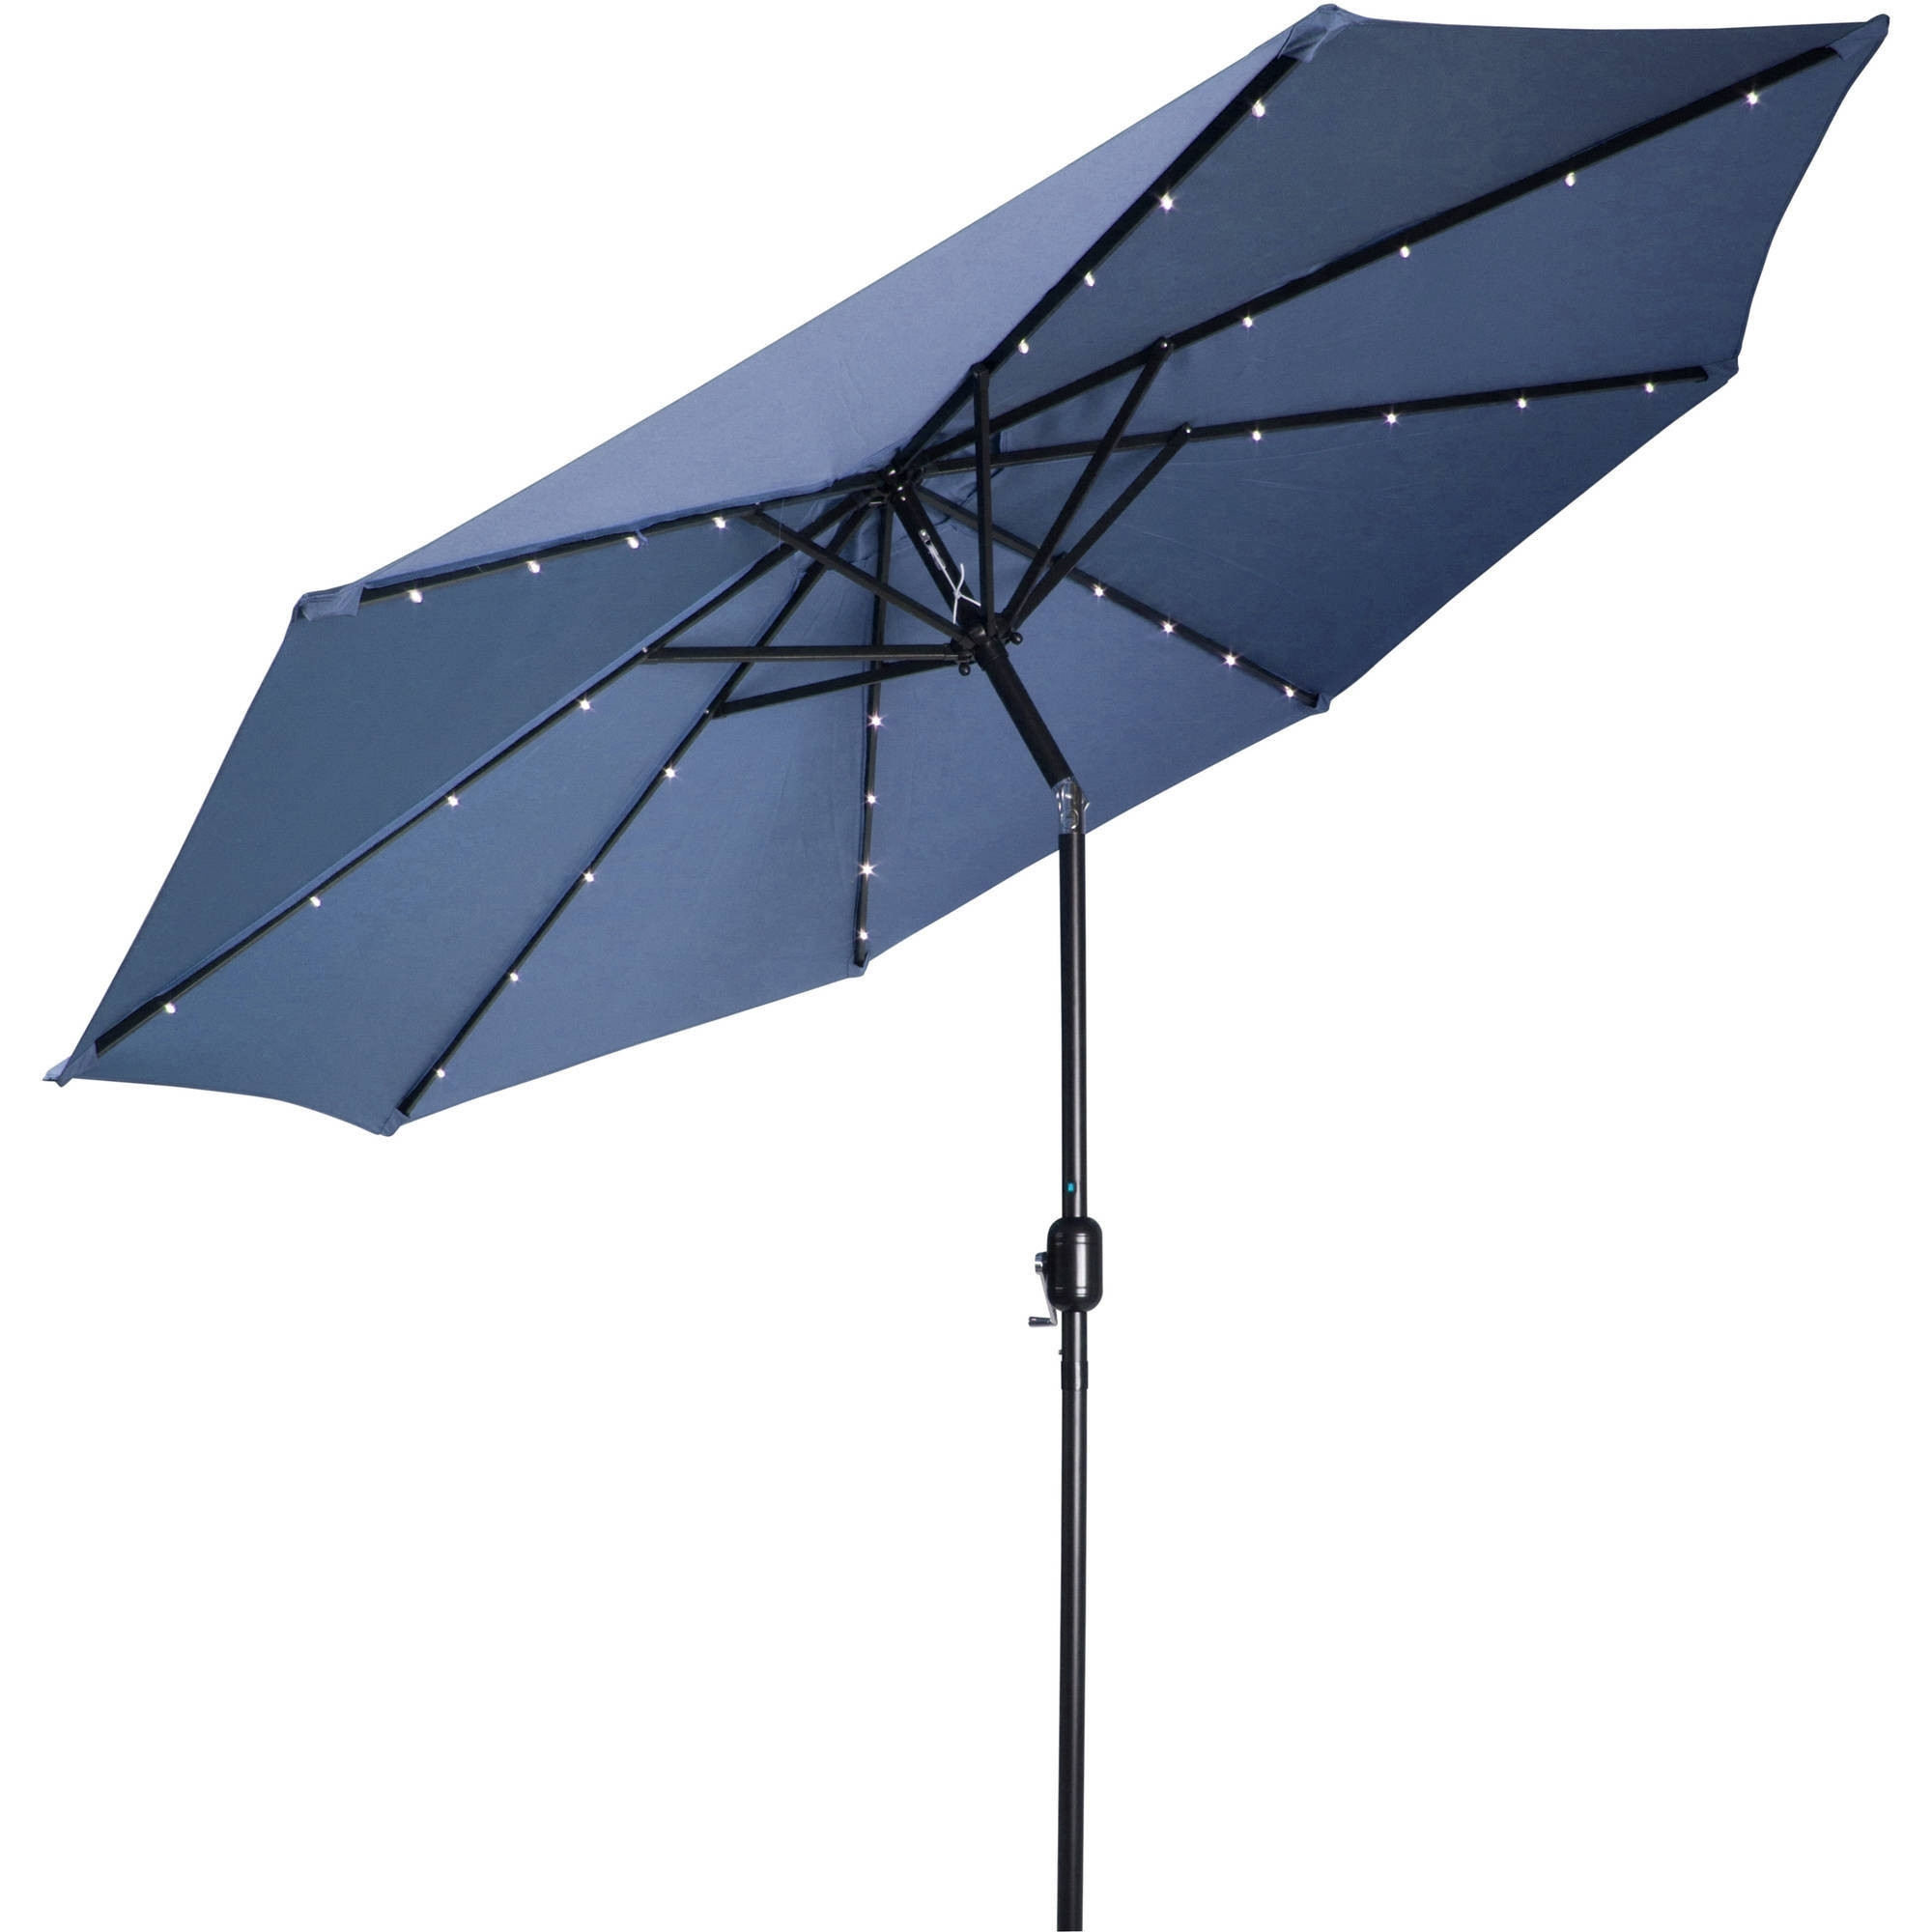 Best Patio Umbrella For Wind Inspirational Costway 10Ft Patio Solar With  Fashionable Patio Umbrellas For Windy